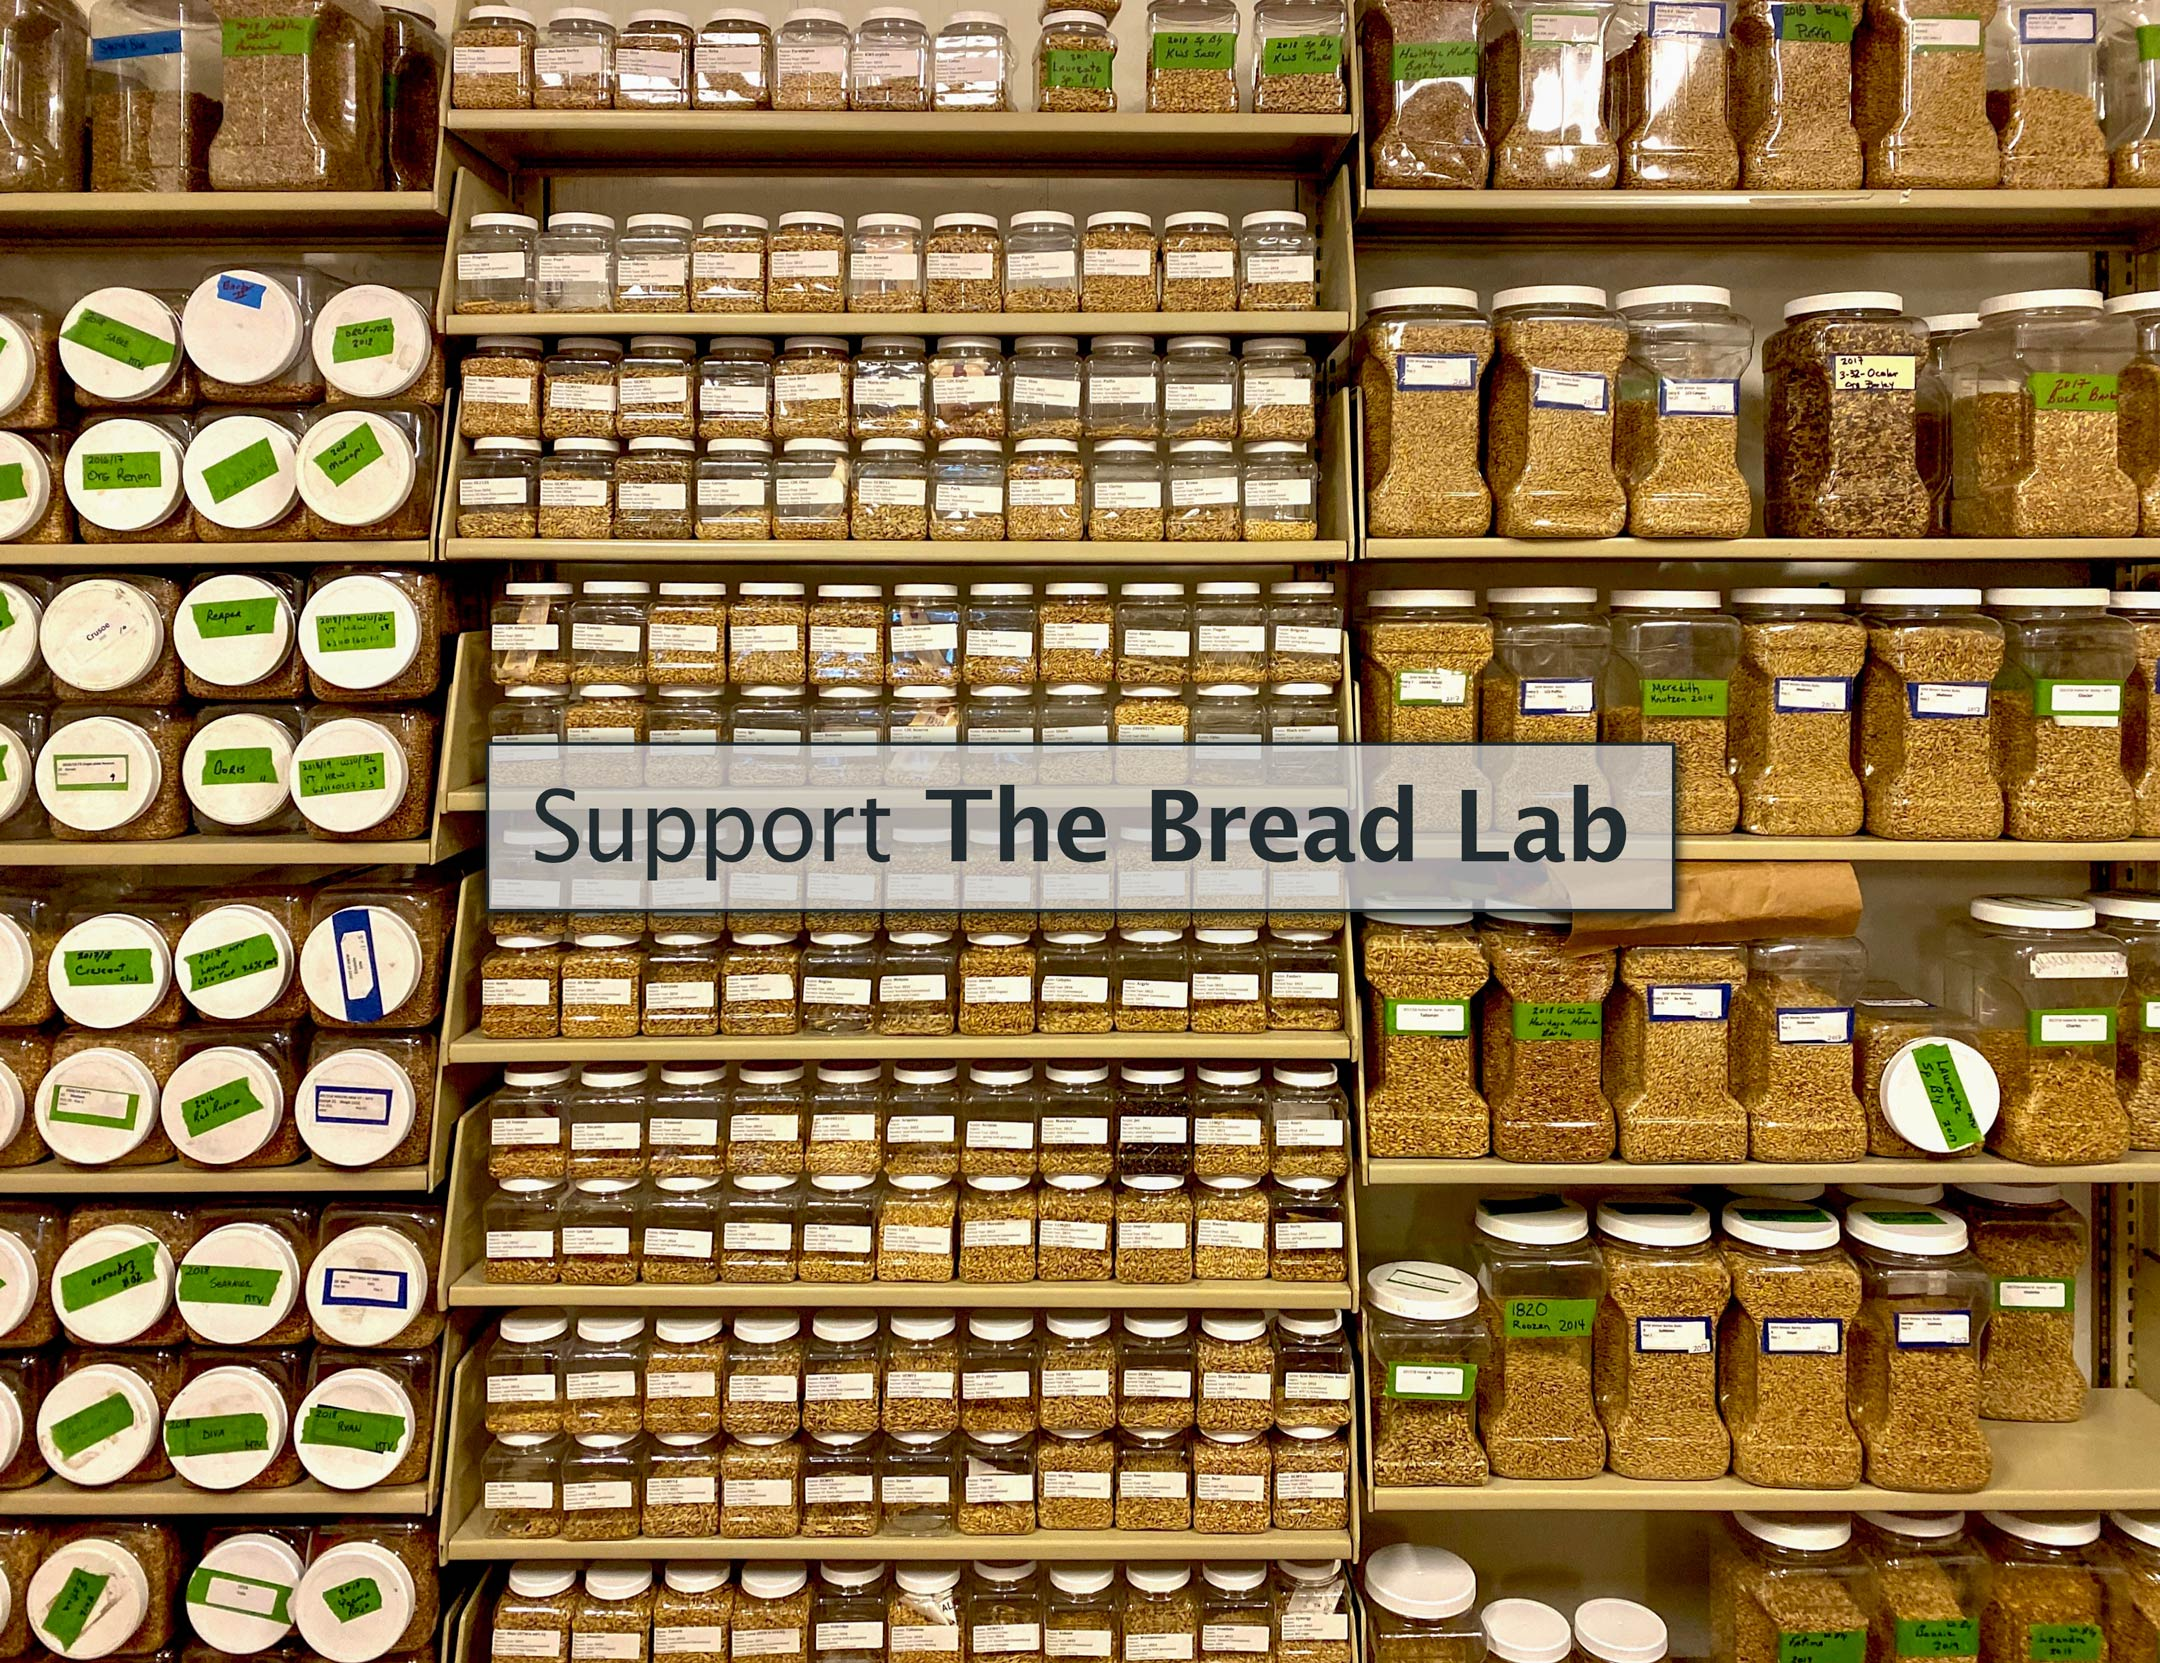 Support the Bread Lab